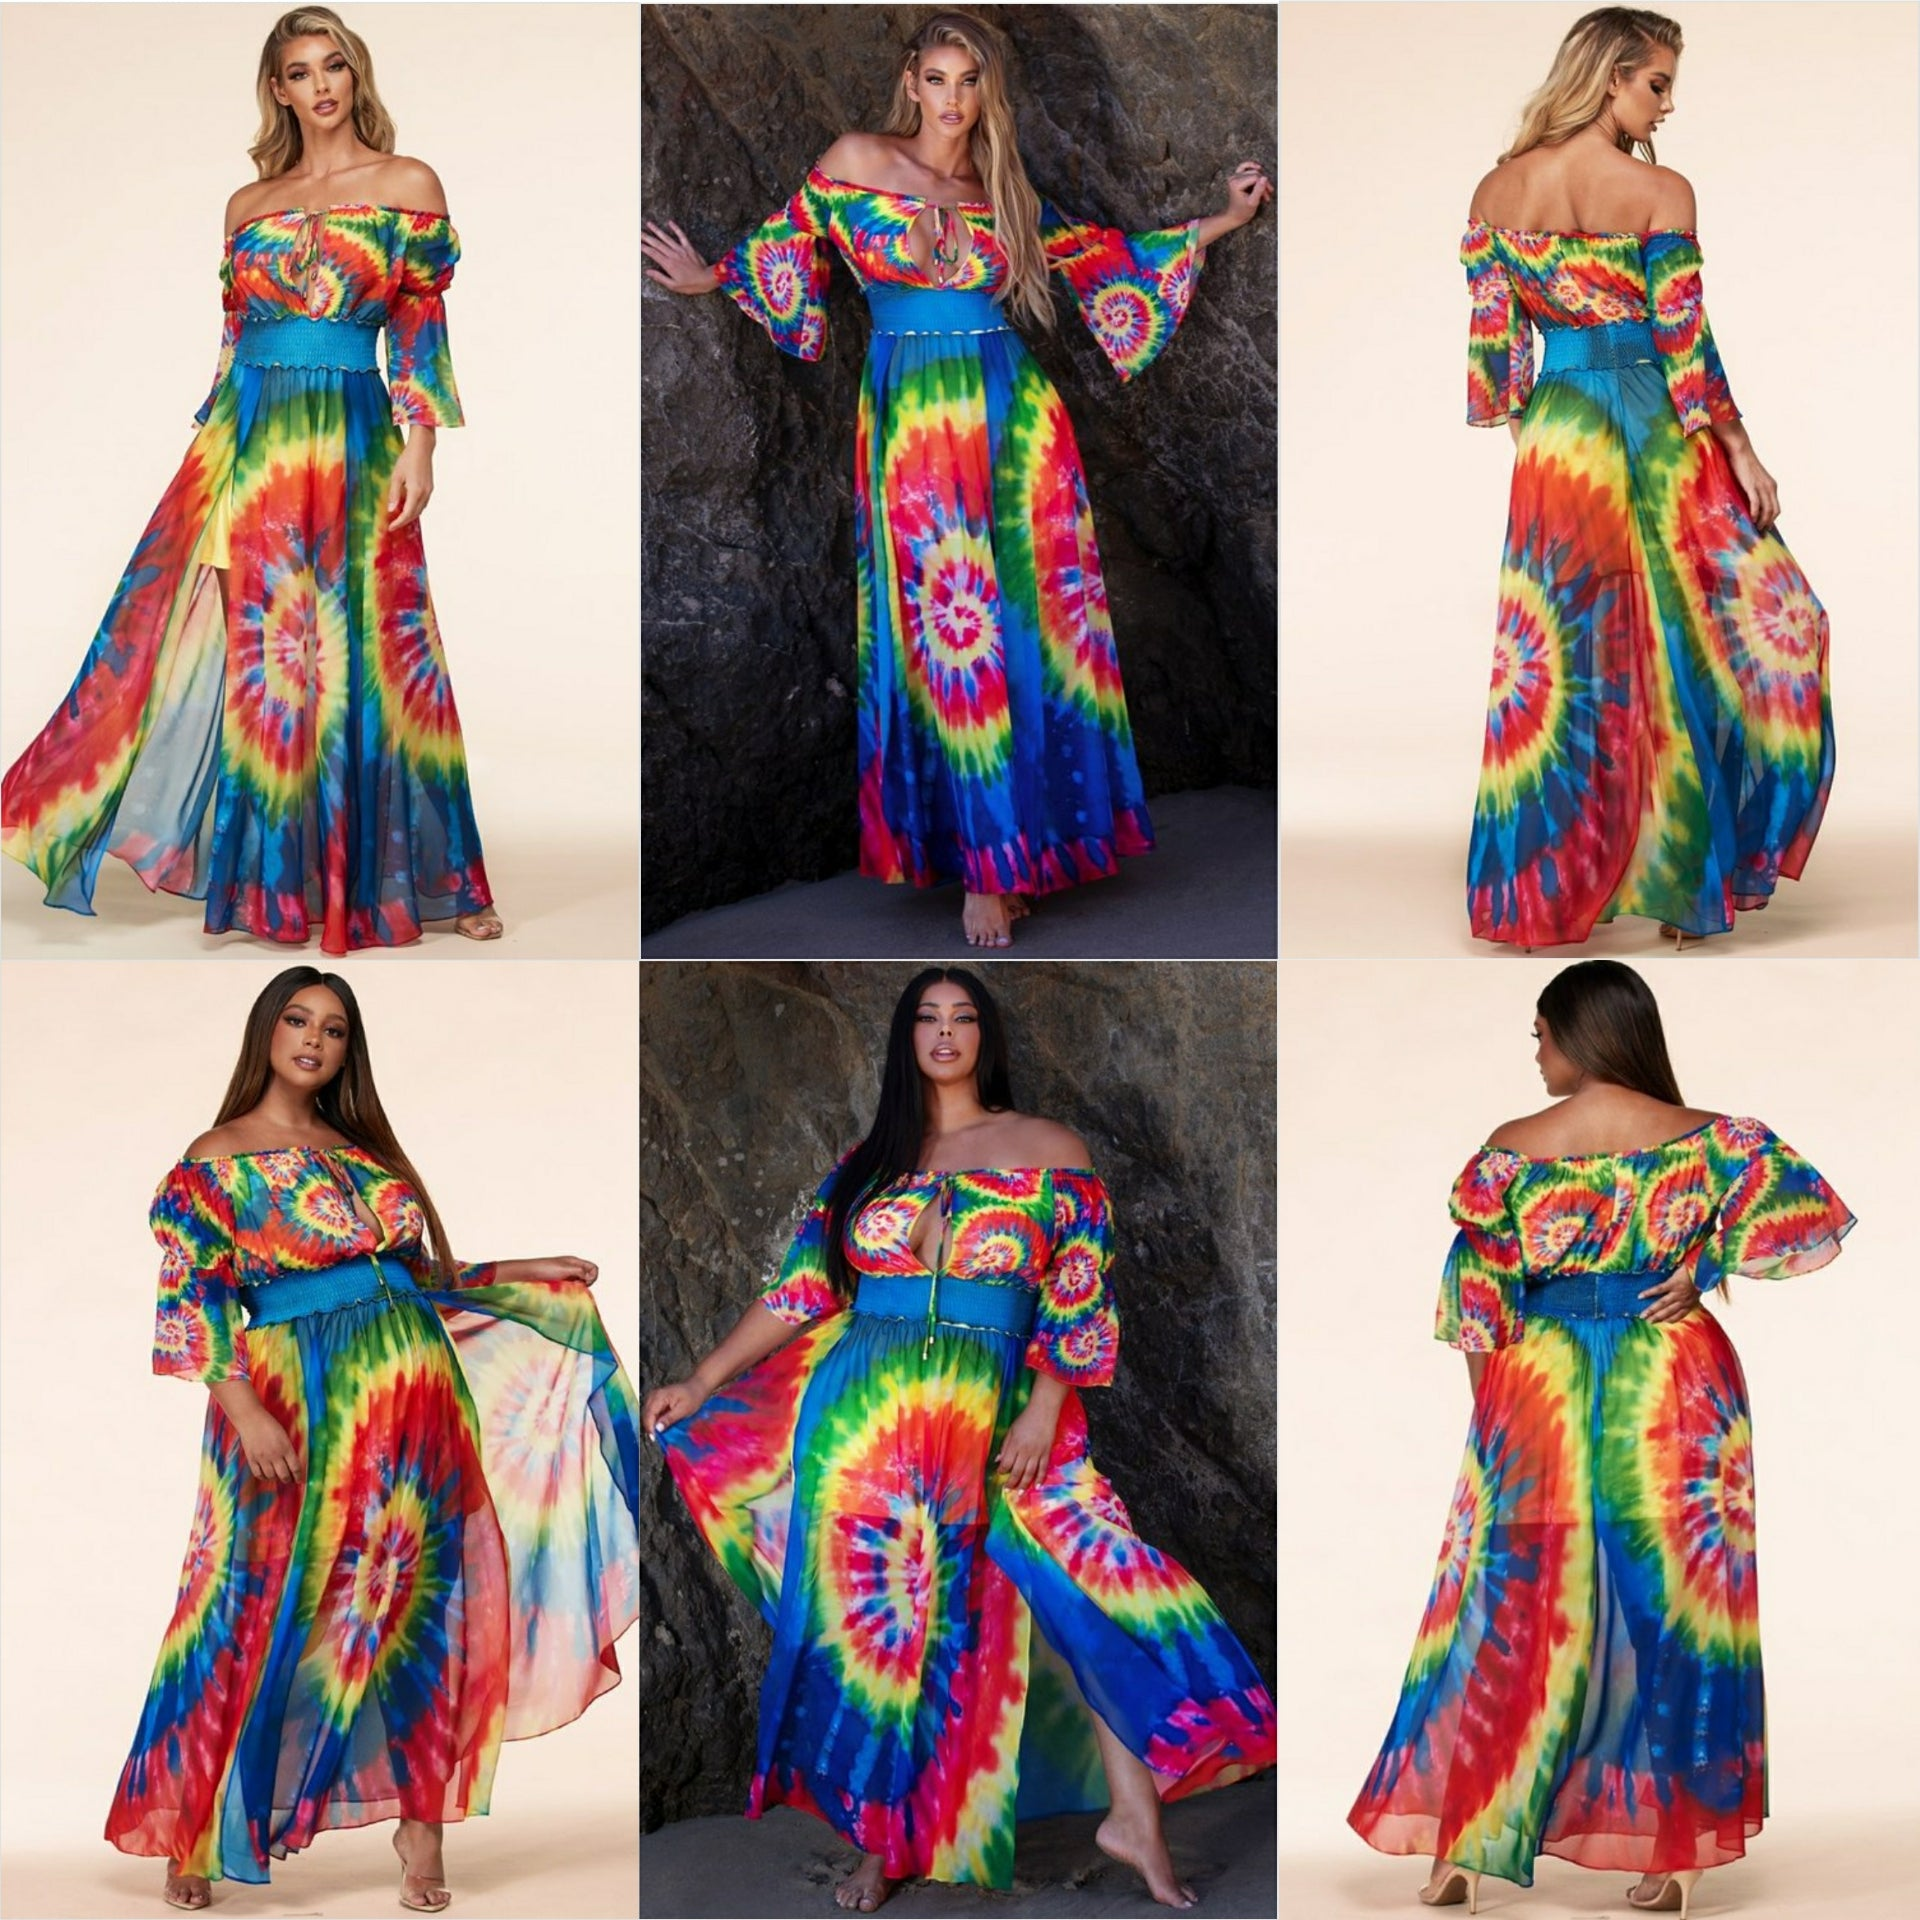 Color burst tie-dye chiffon maxi dress